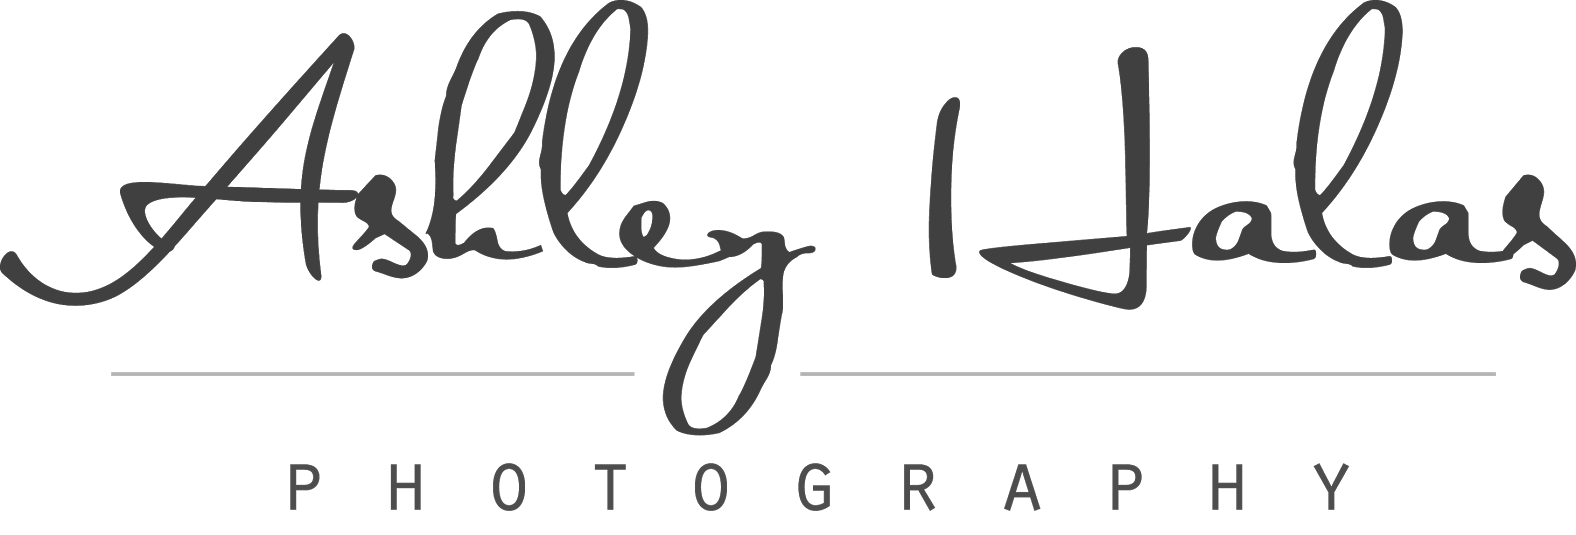 Ashley Halas Photography LLC